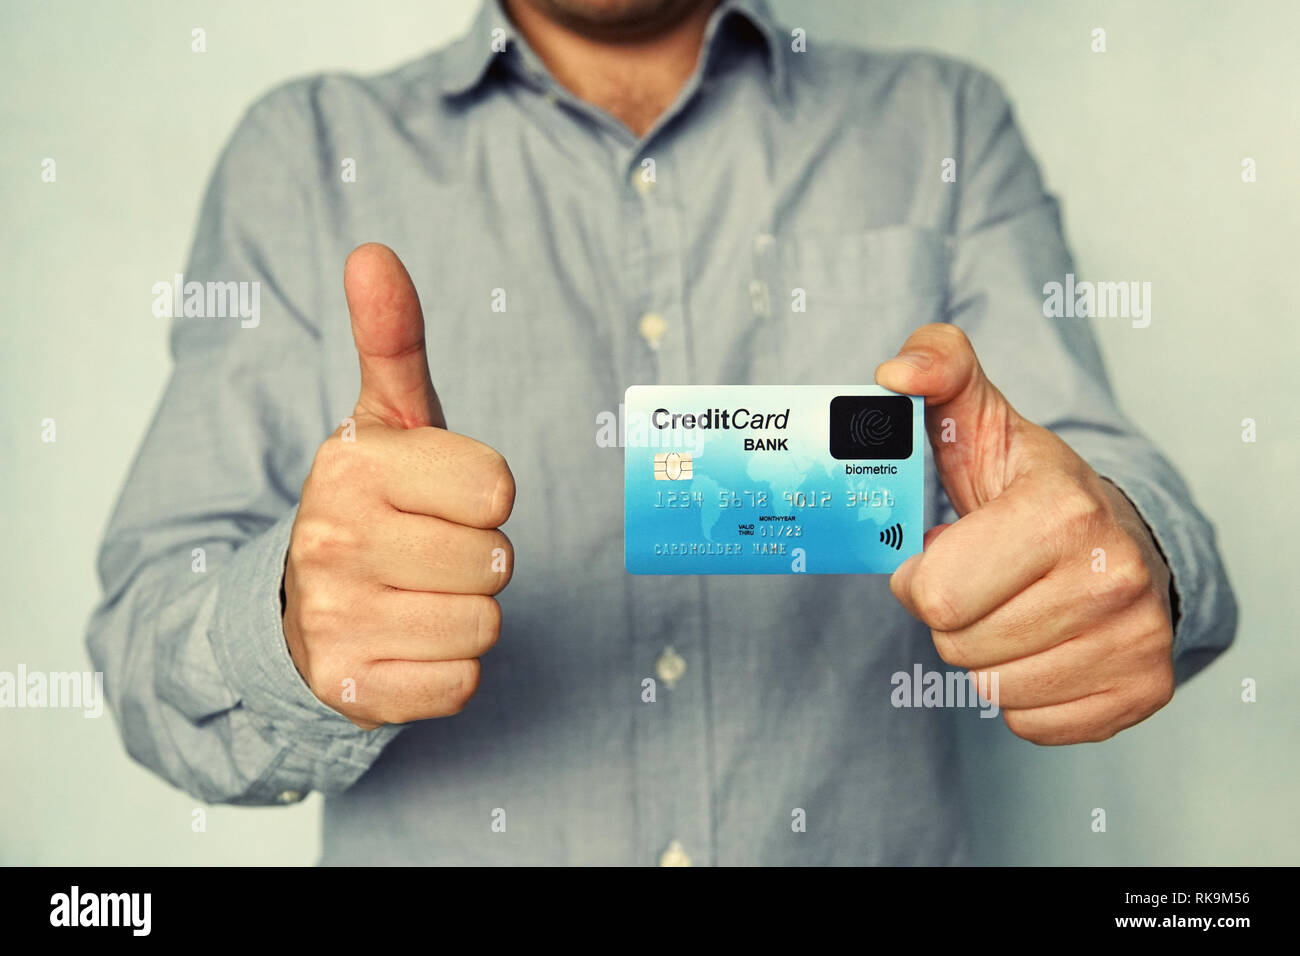 Cropped shot of young man in shirt holding credit card with biometric technology and showing thumb up. Man is glad to use bank card of new type. Advan - Stock Image